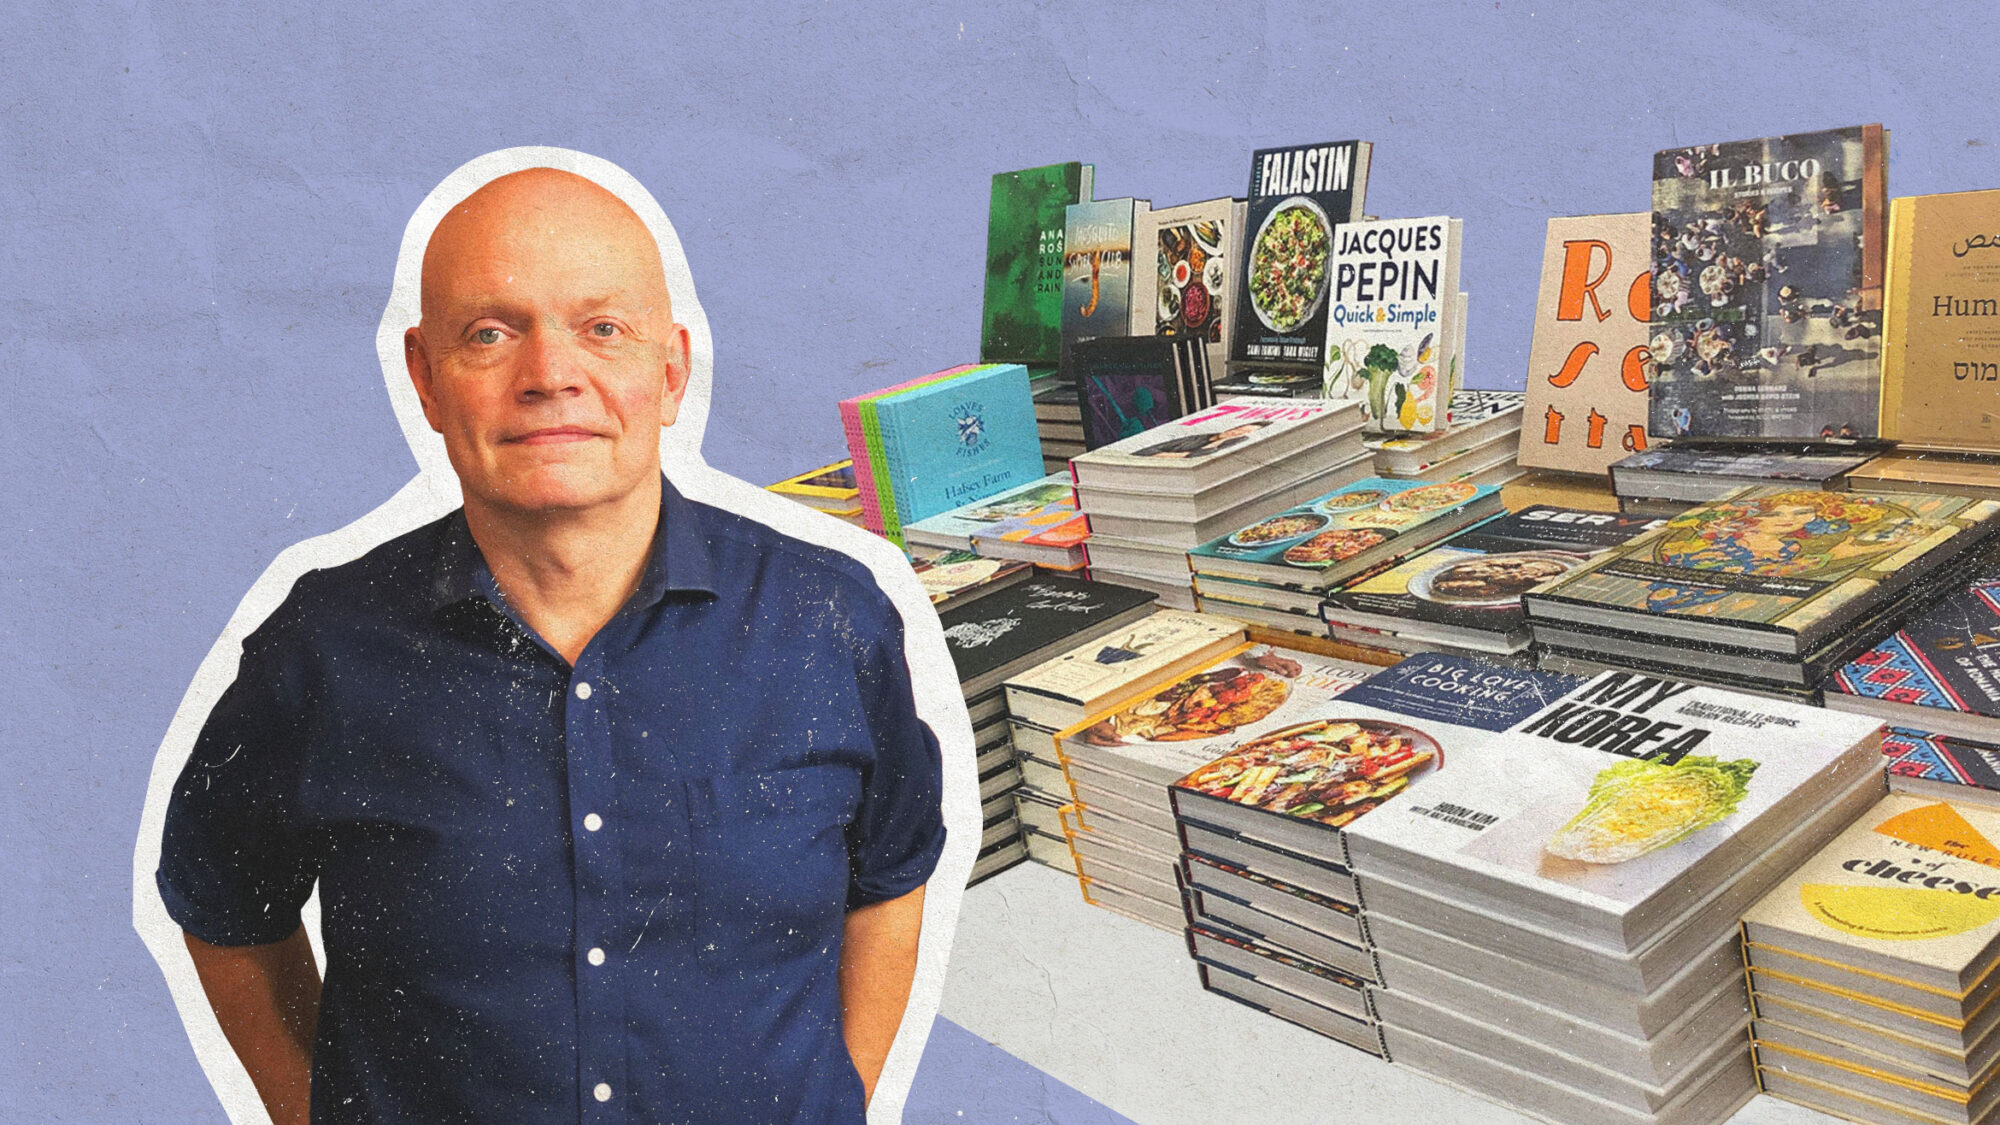 Article-Matt-Sartwell-Kitchen-Arts-and-Letters-Cookbook-Bookstore-NYC